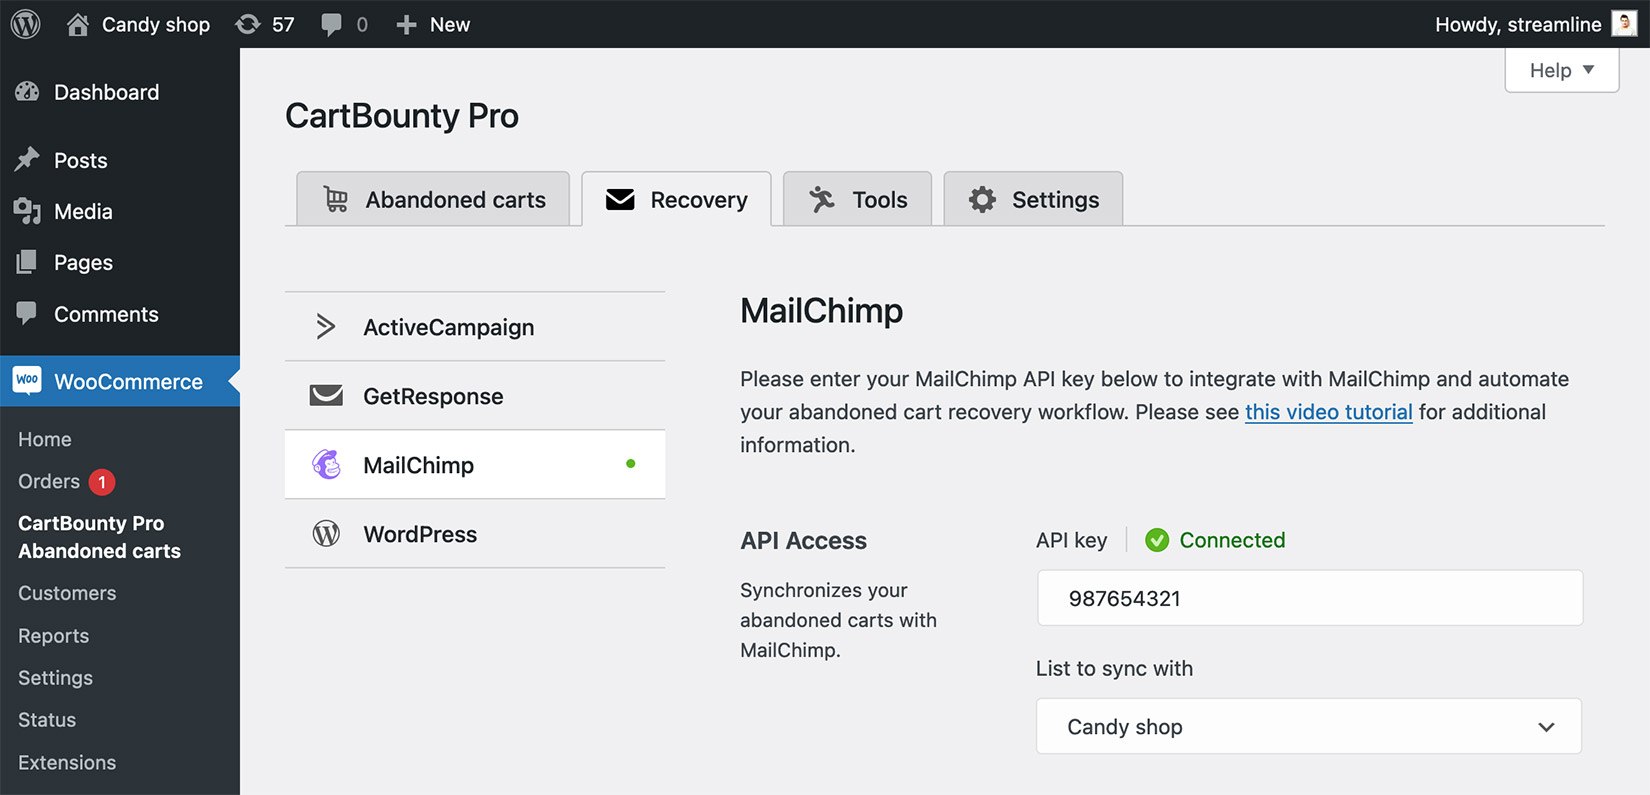 Successful integration with MailChimp